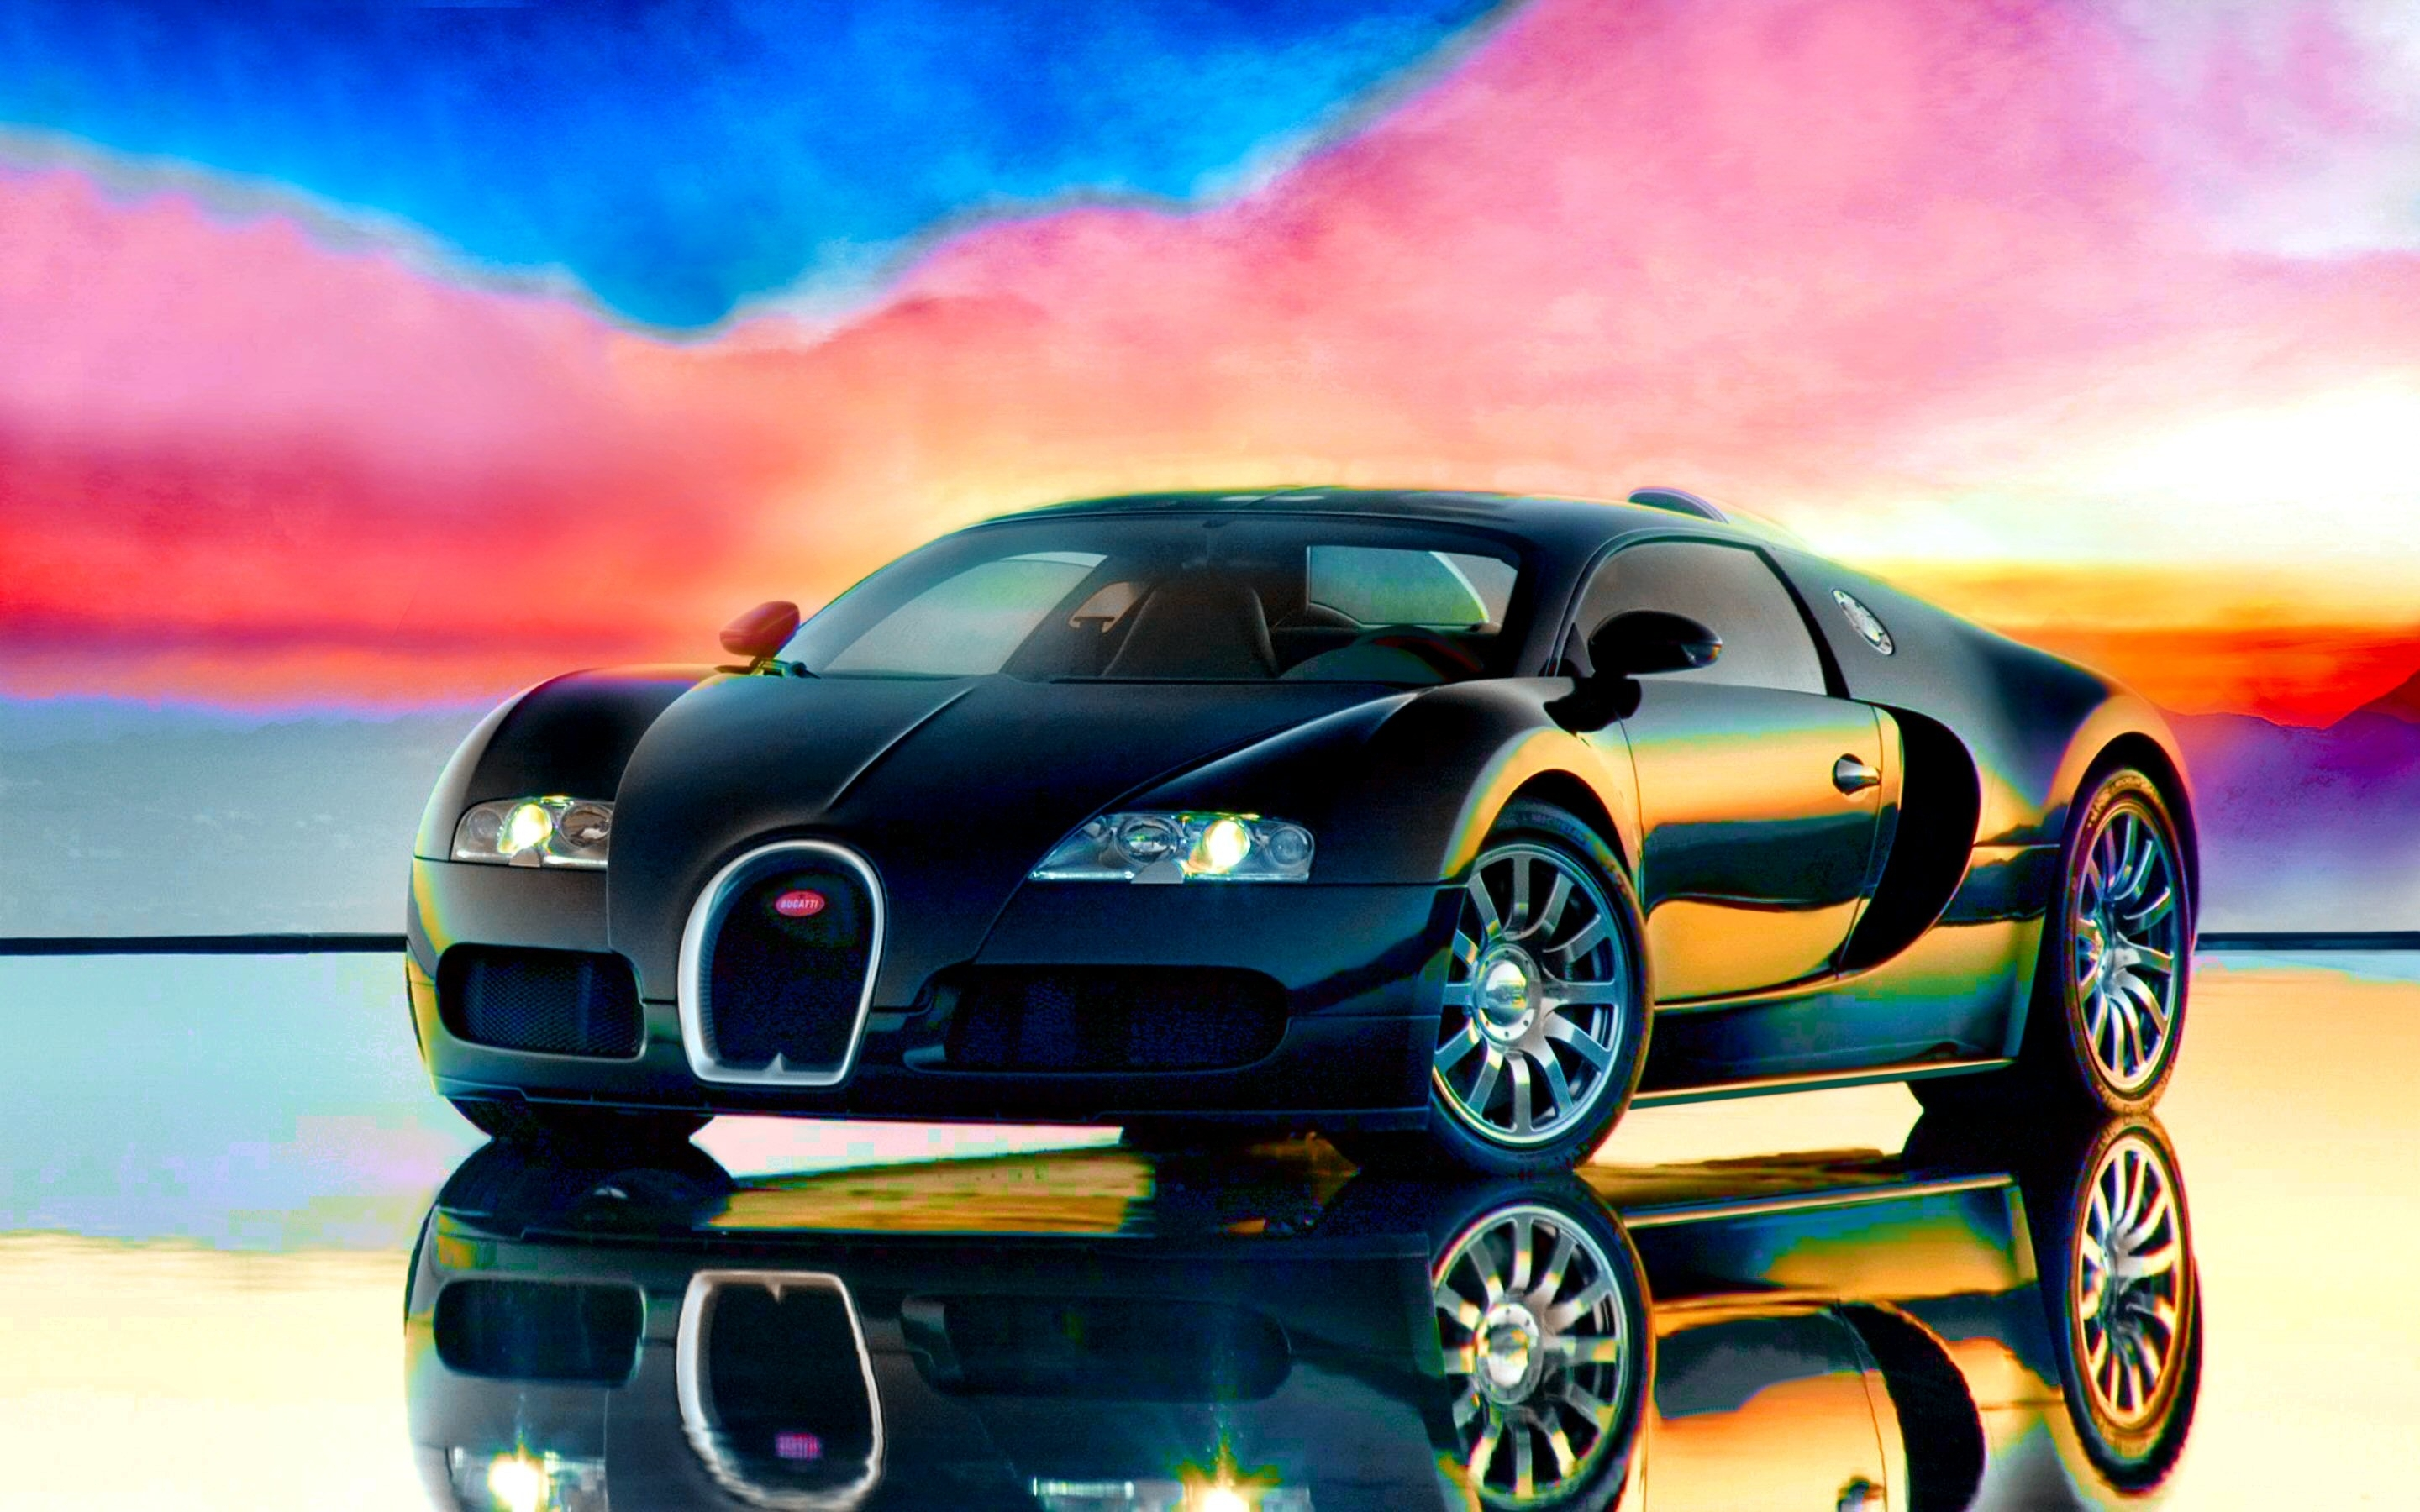 212 bugatti veyron hd wallpapers | background images - wallpaper abyss